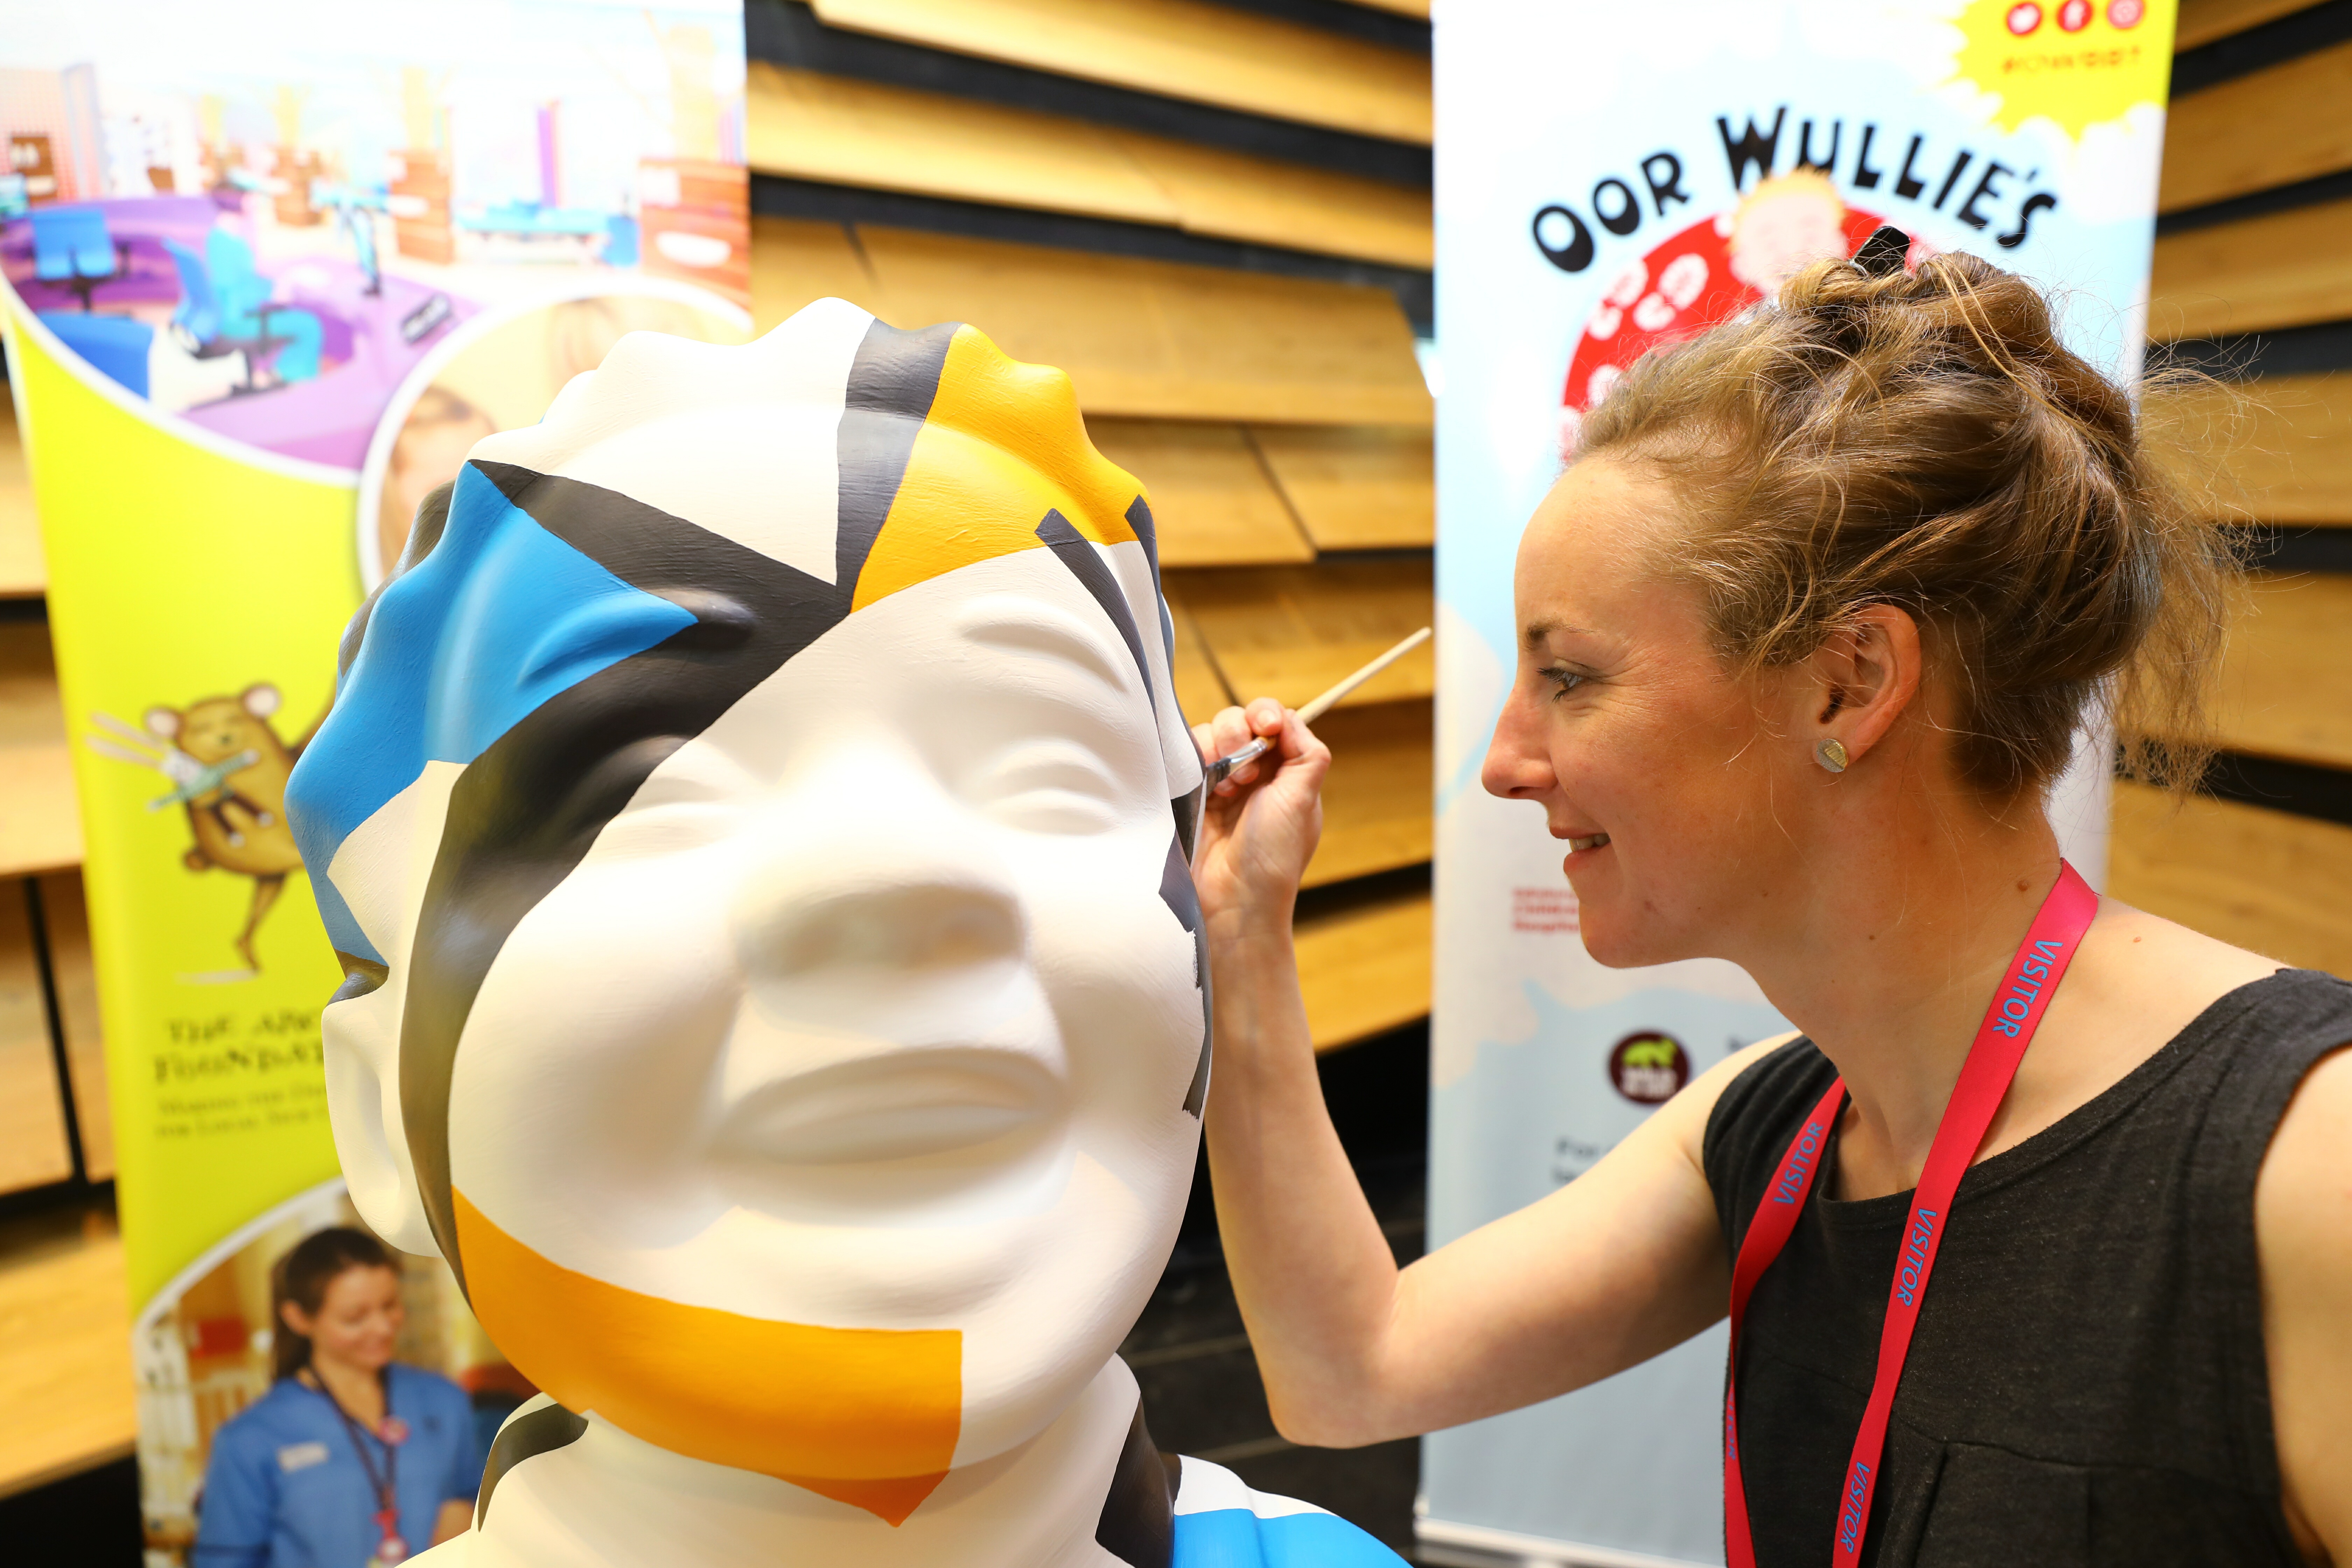 Dundee artist Islay Spalding painting her Oor Wullie, 'Dazzle Wullie' at the V&A.